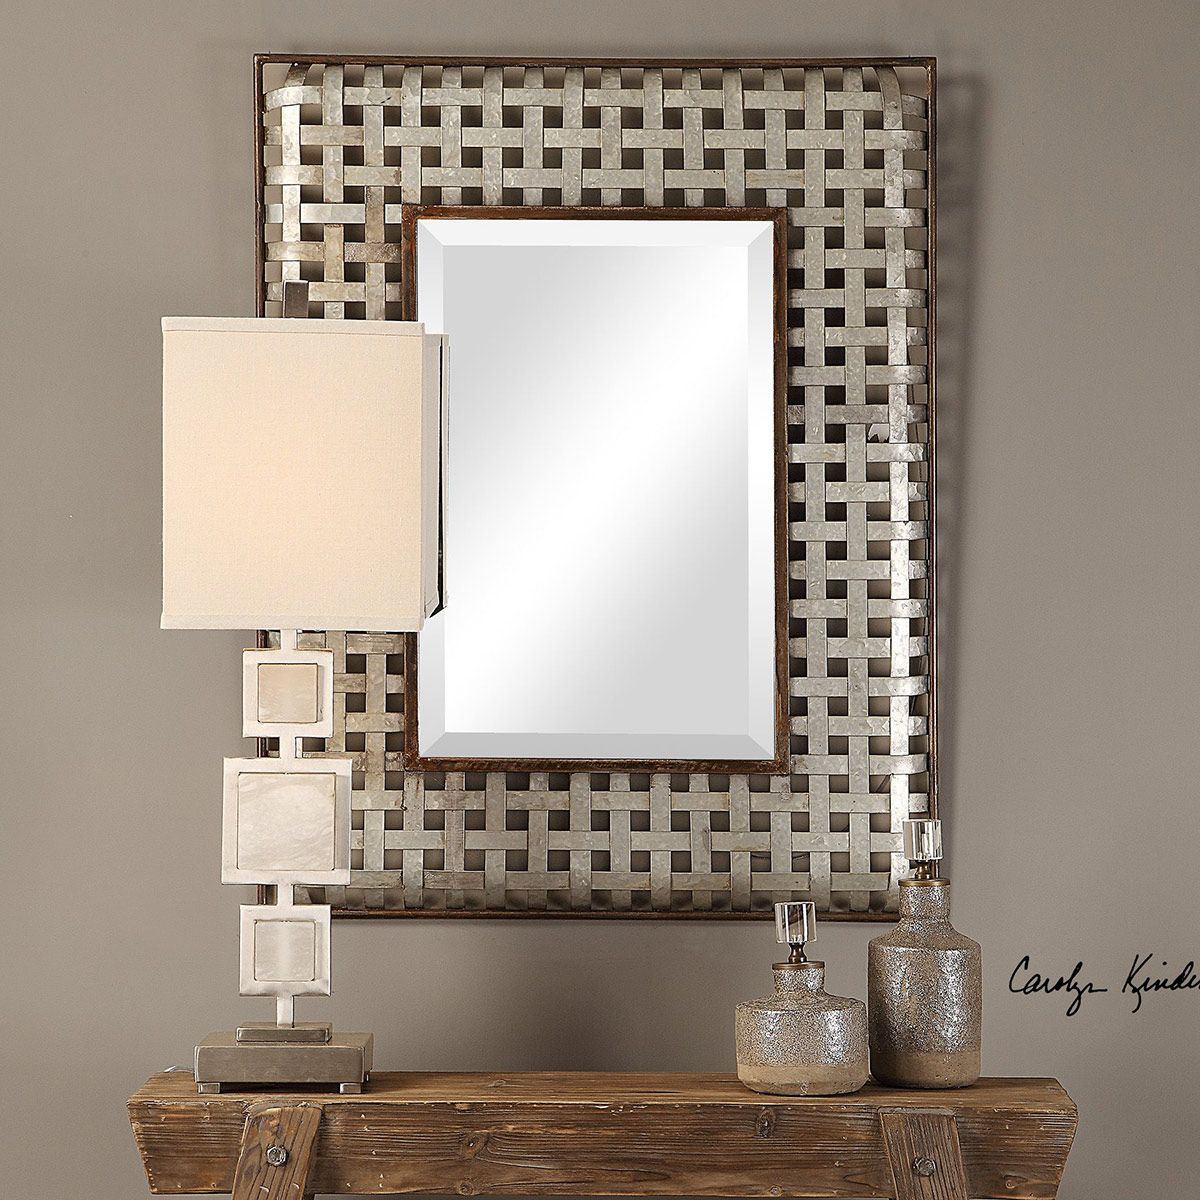 Fabelle Galvanized Metal Wall Mirror